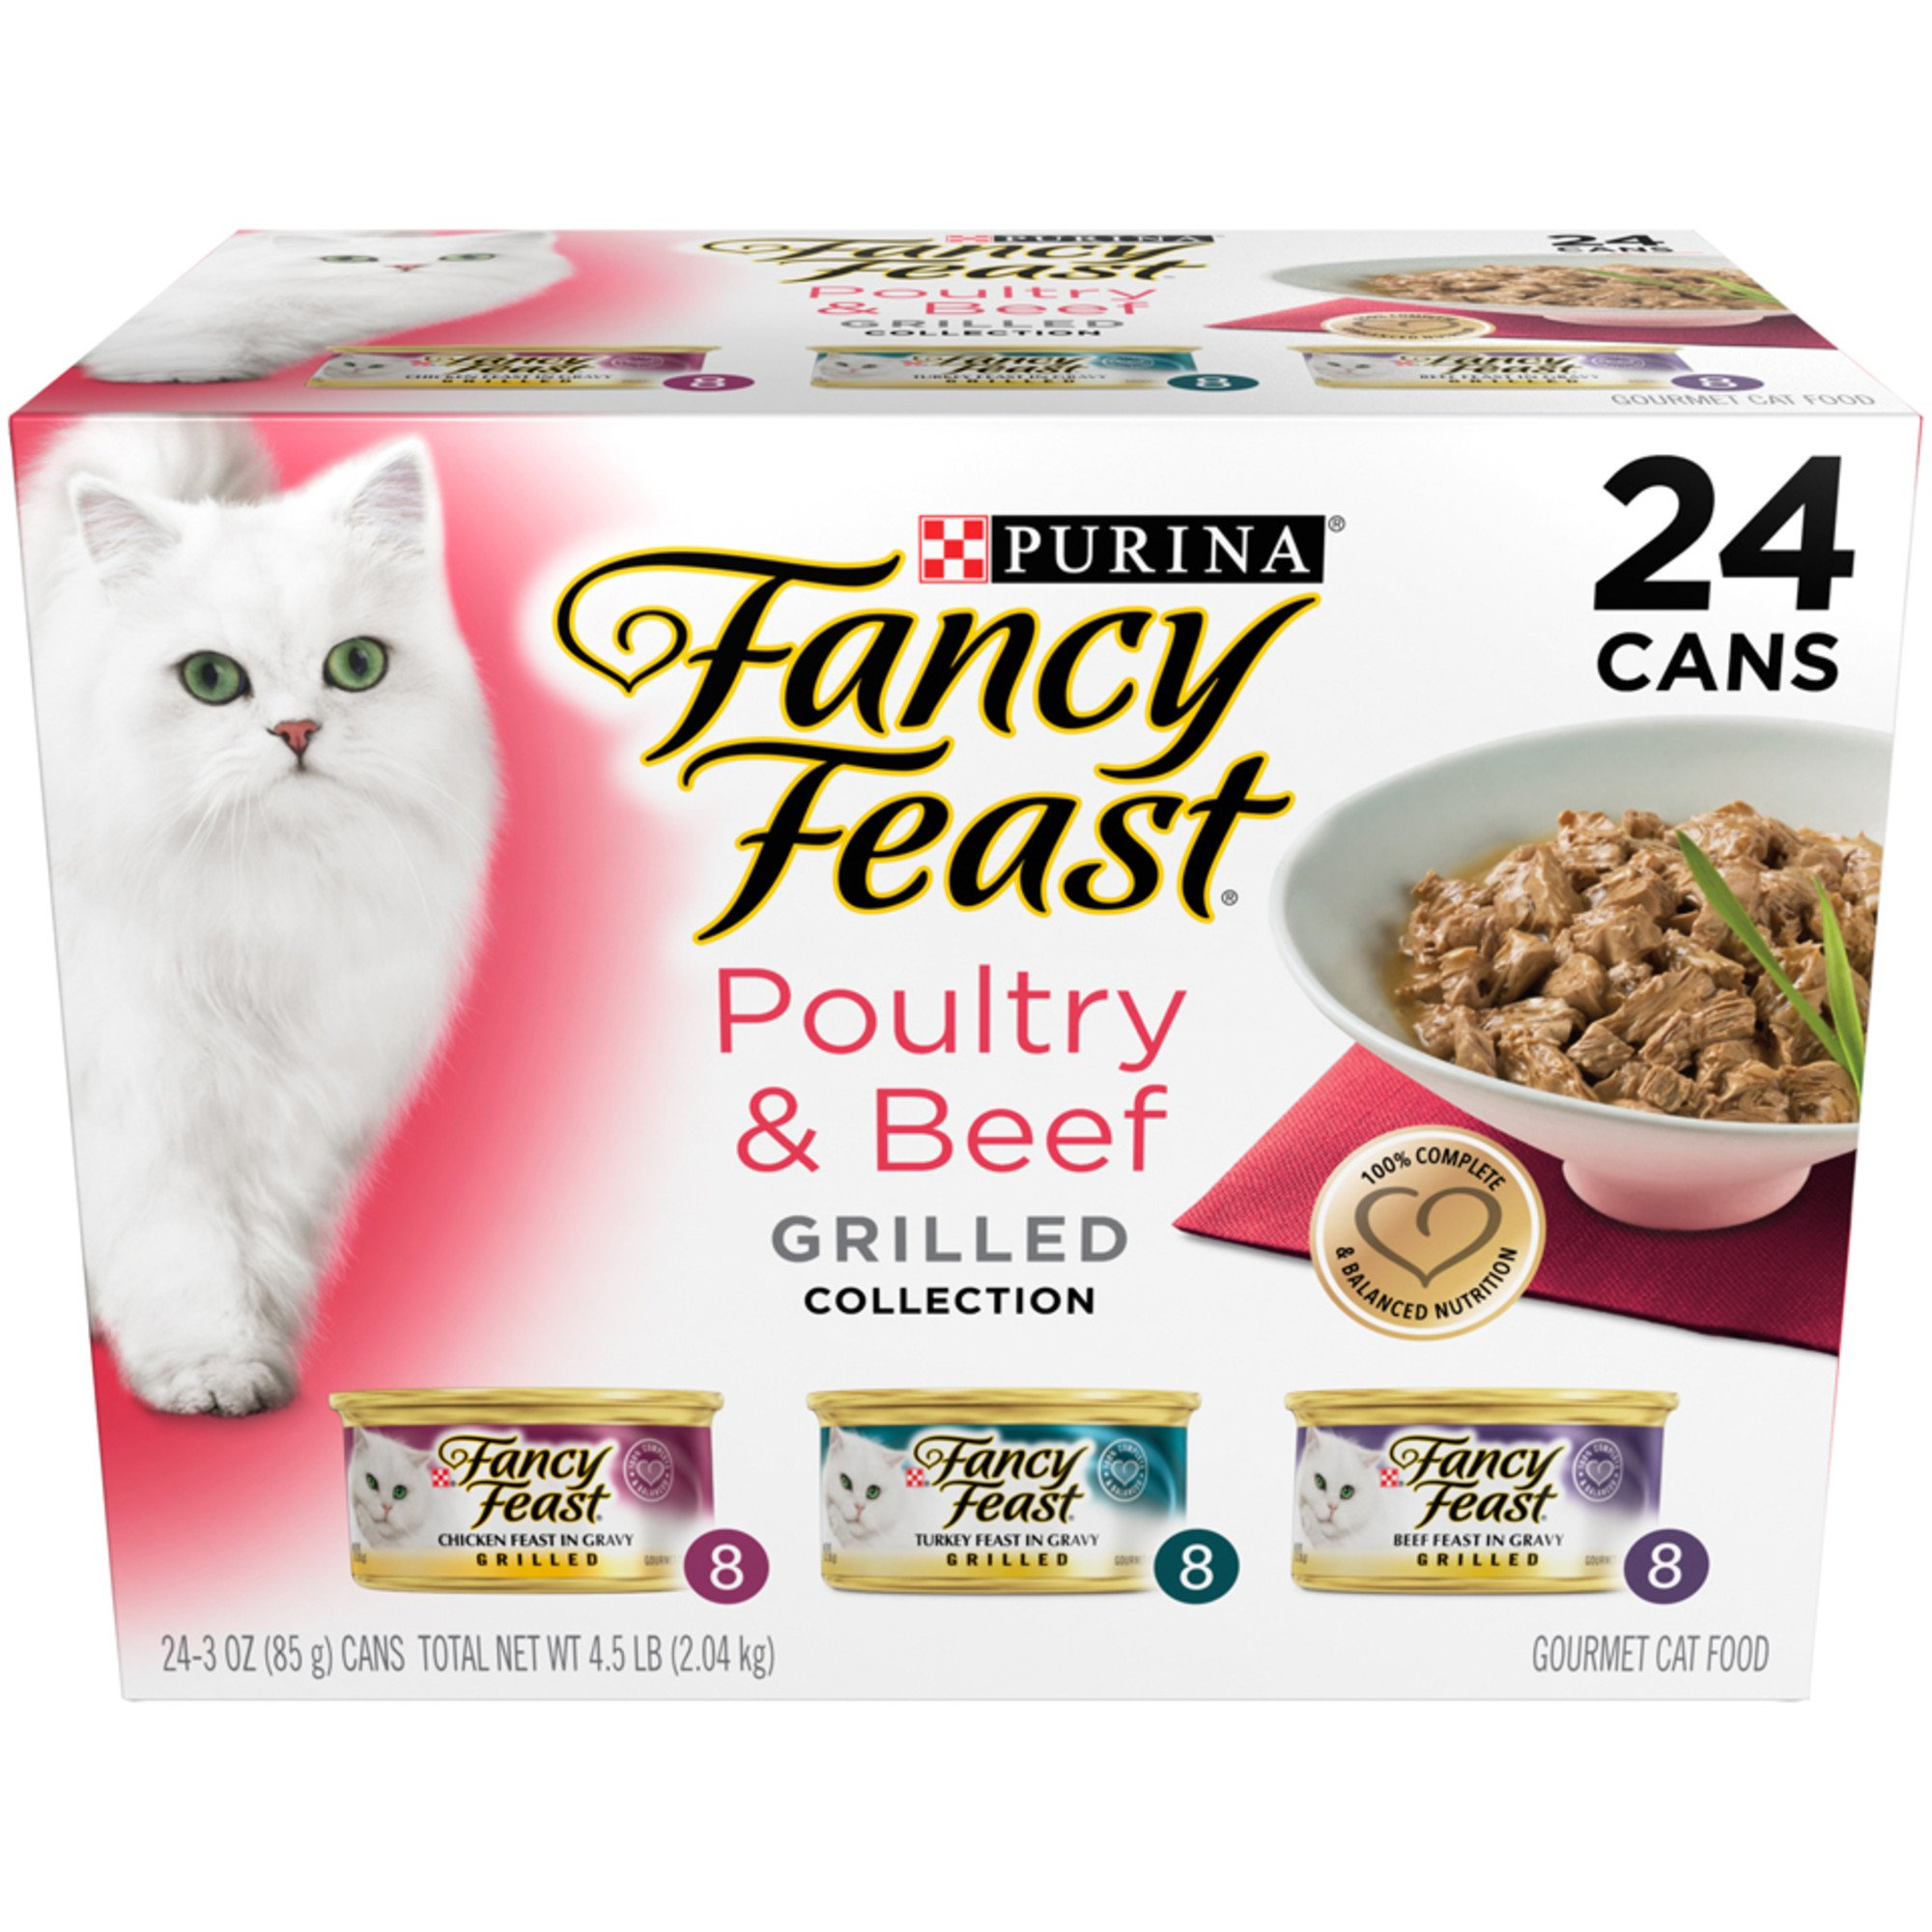 Purina Fancy Feast Grilled Poultry & Beef Collection Wet Cat Food Variety Pack, 3 oz., Pack of 24